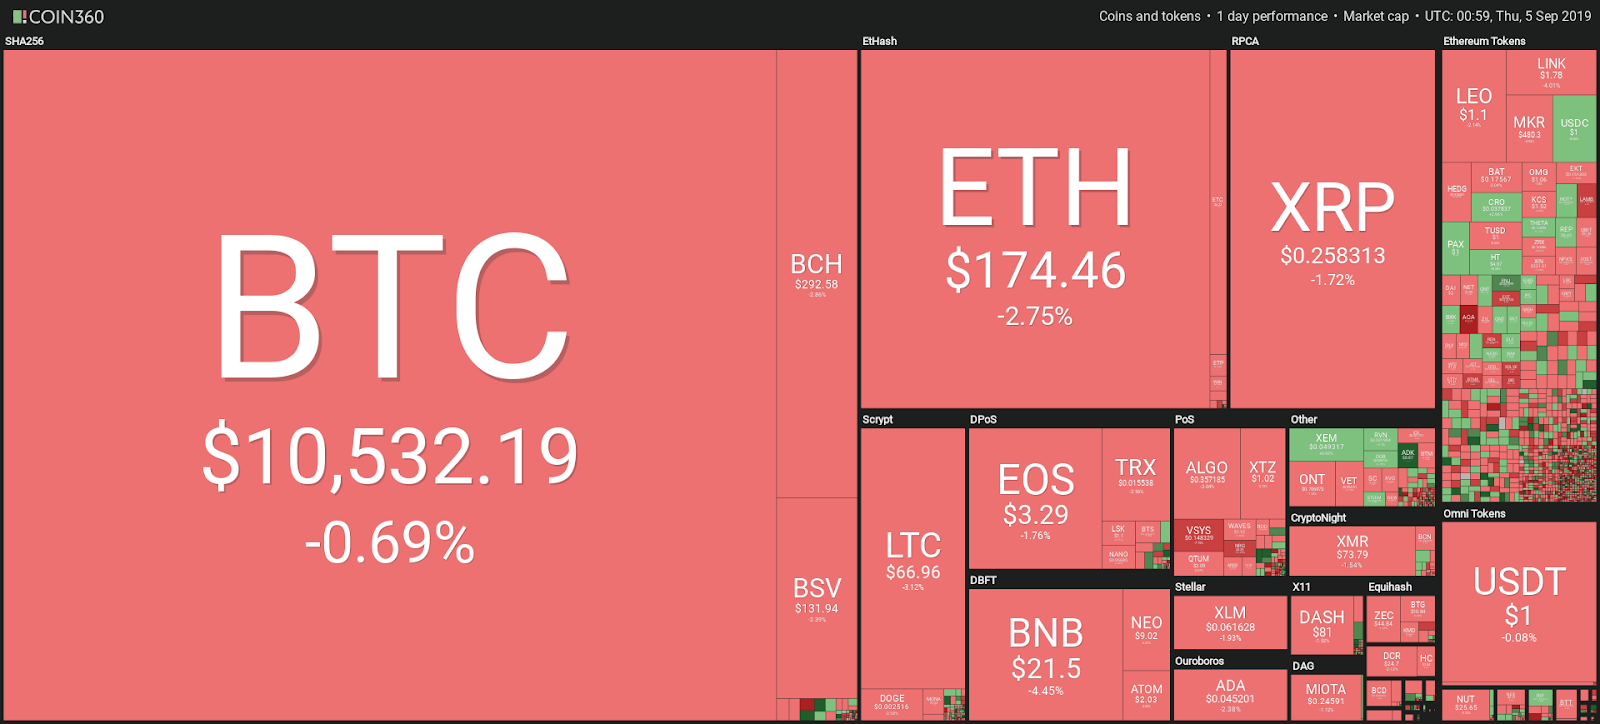 Altcoins Are Taking a Beating While Bitcoin Price Holds Around $10,500, CryptoCoinNewsHub.com